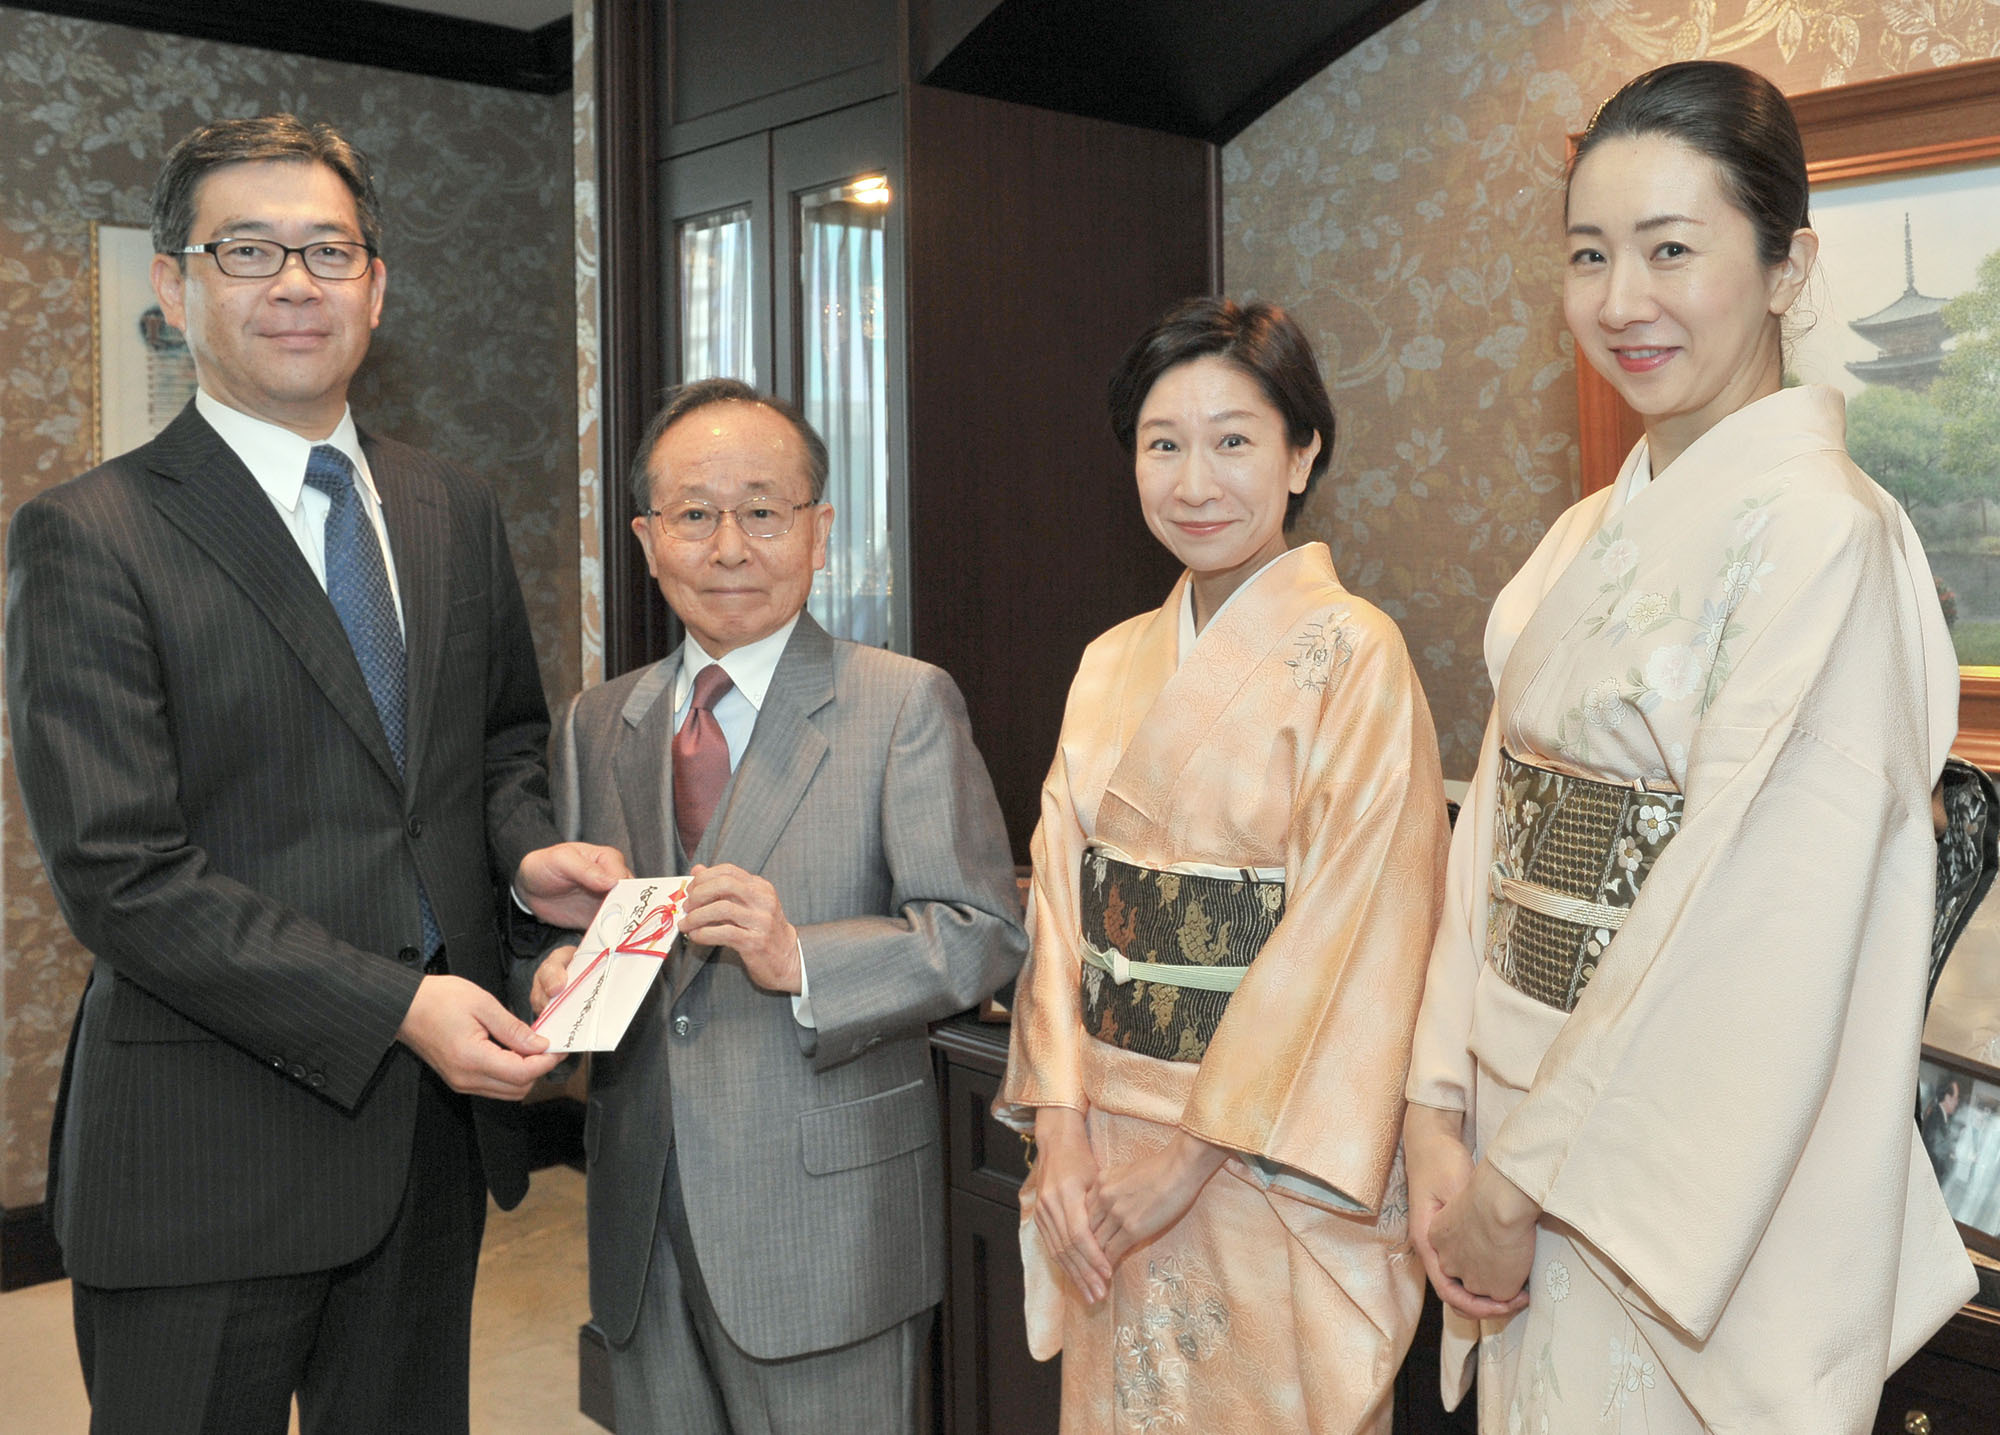 Tea ceremony school Chanoyu International Executive Director Takeya Yamasaki (second from left) presents The Japan Times President Takeharu Tsutsumi a ¥342,000 contribution for The Japan Times Readers' Fund at The Japan Times on Dec. 9. The money will be shared among overseas charities, including NPOs that help poor Cambodians and Filipinos secure better access to education. | YOSHIAKI MIURA